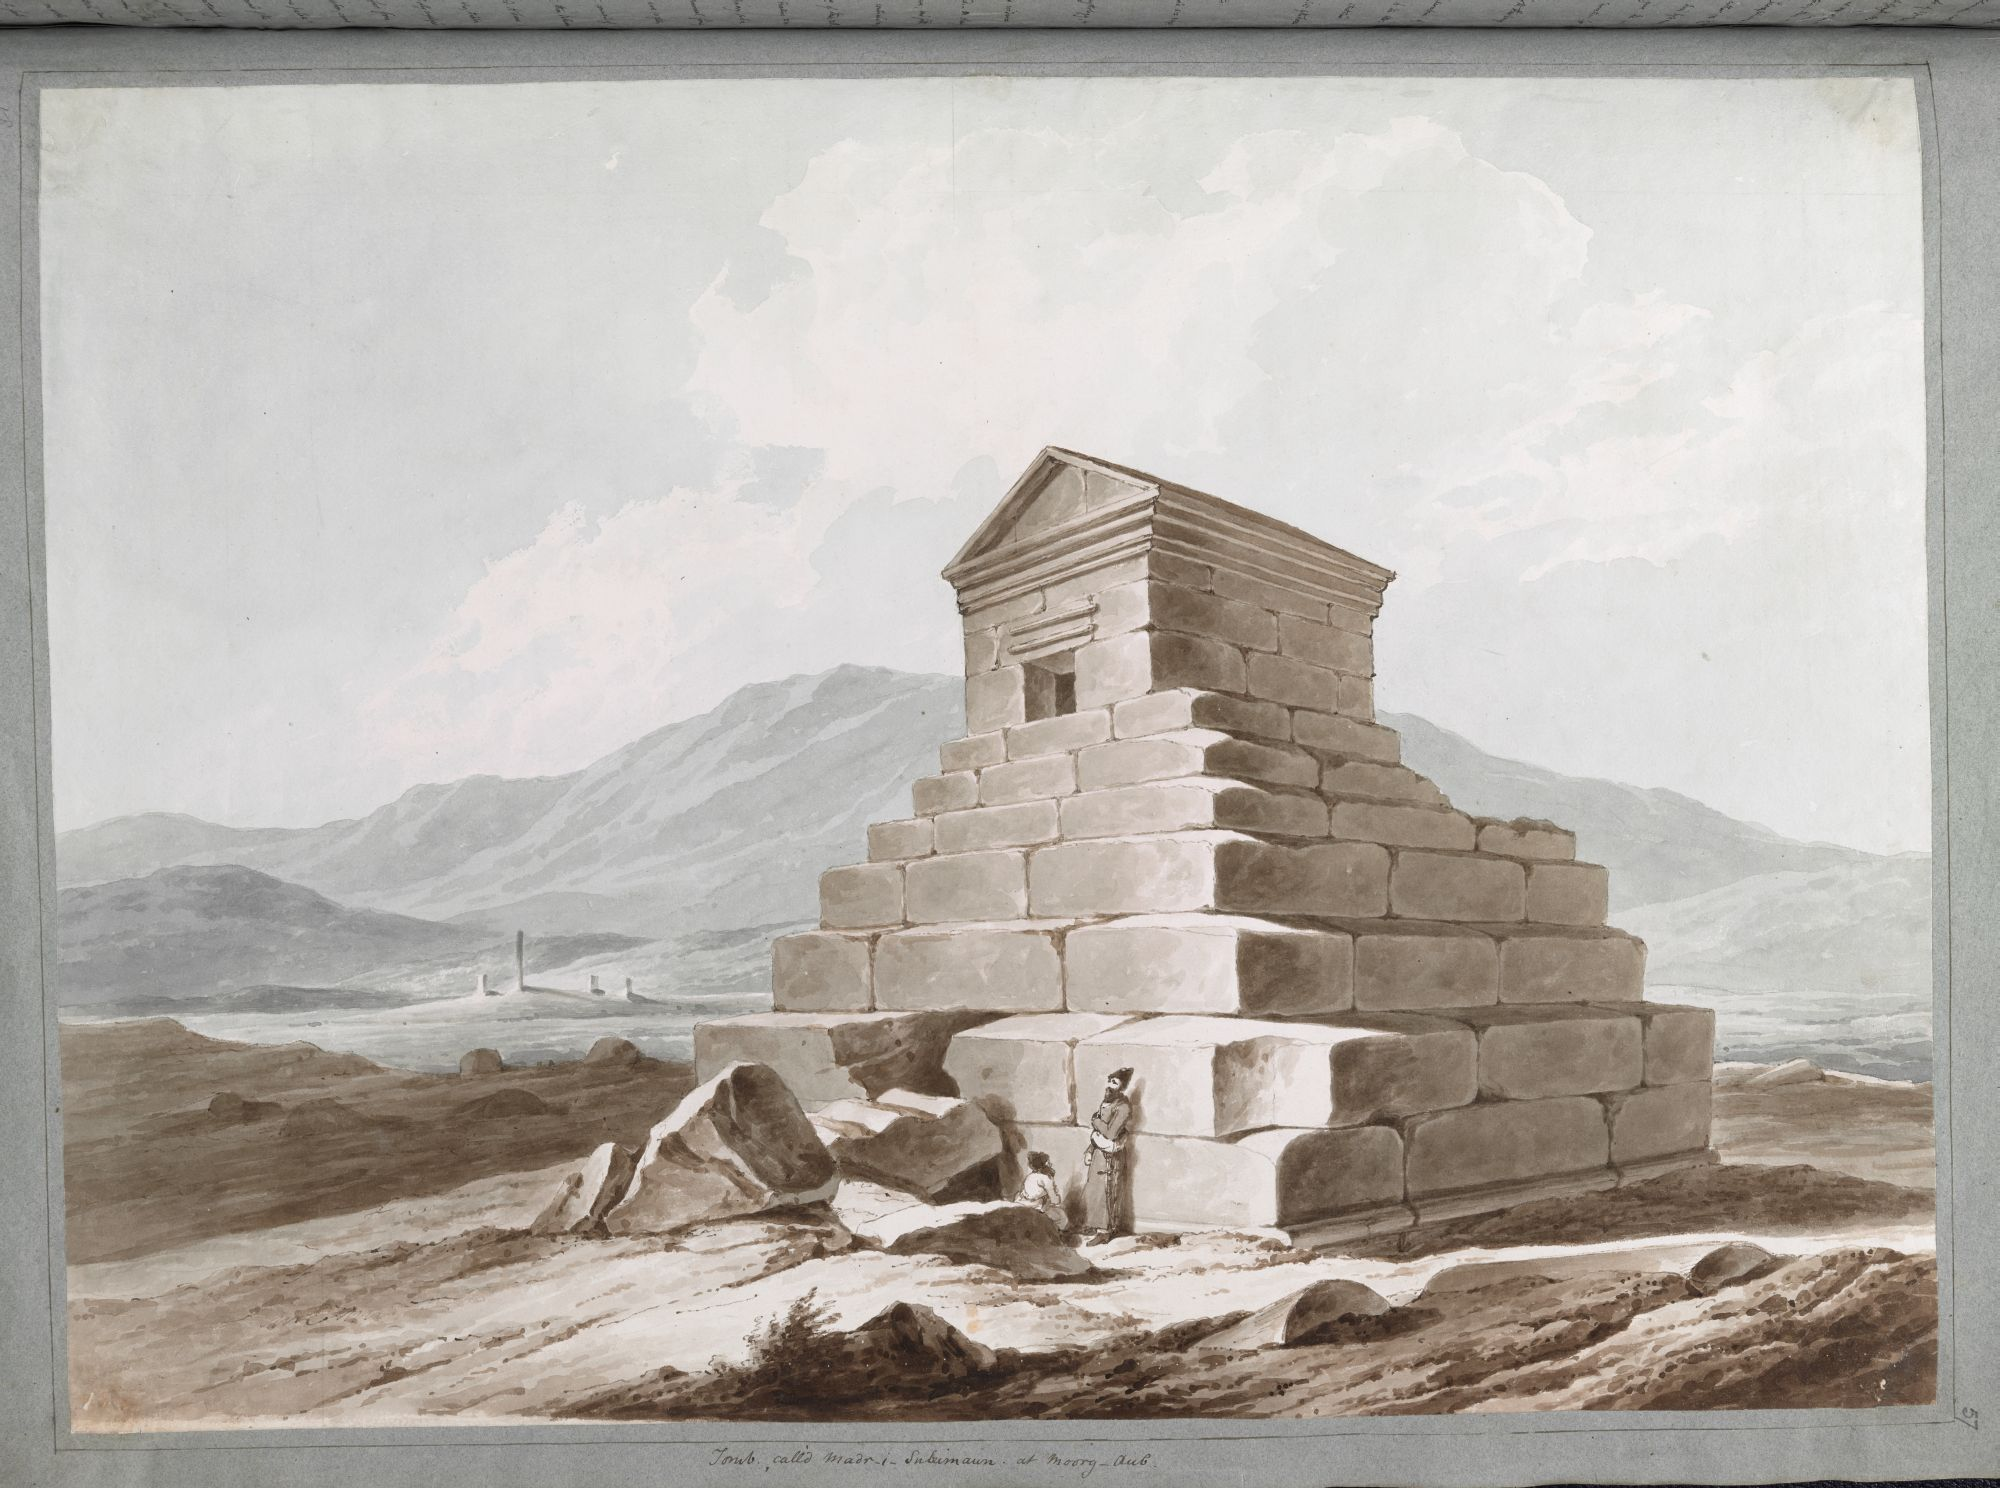 Tomb of Cyrus the Great, by Sir Robert Ker Porter.